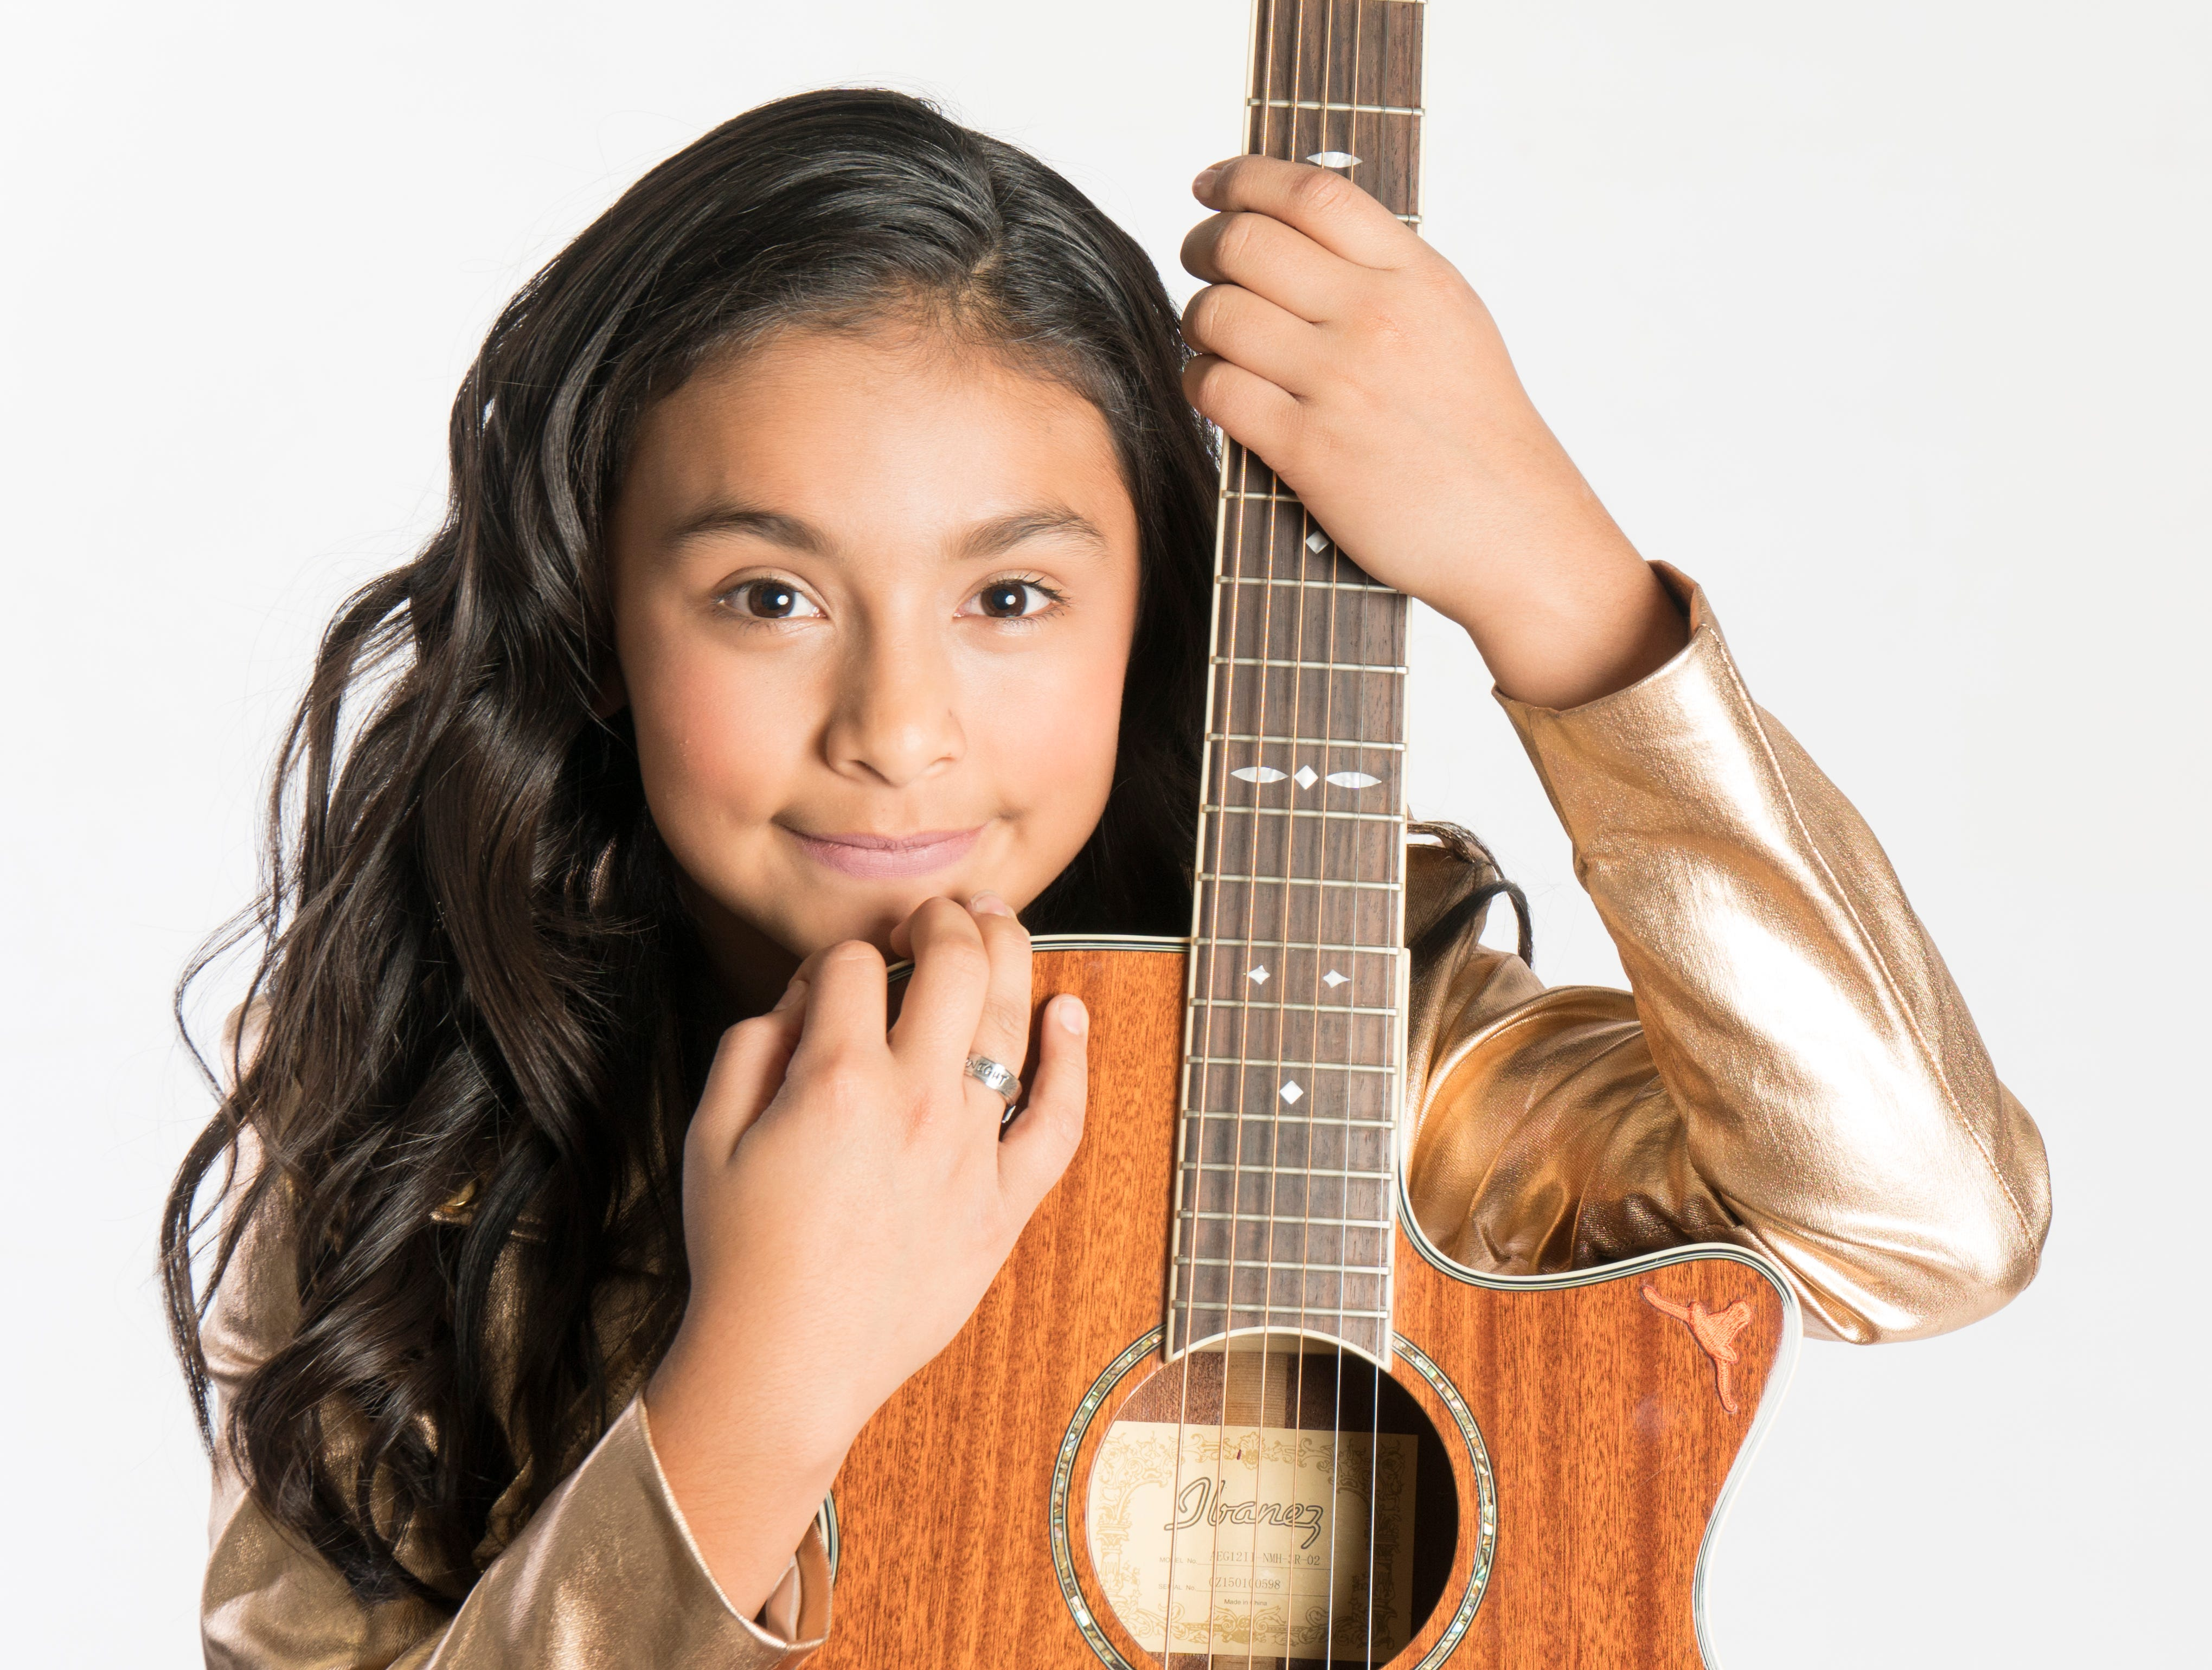 This 11-year-old Texas singing sensation is the youngest to win a Tejano Music Award